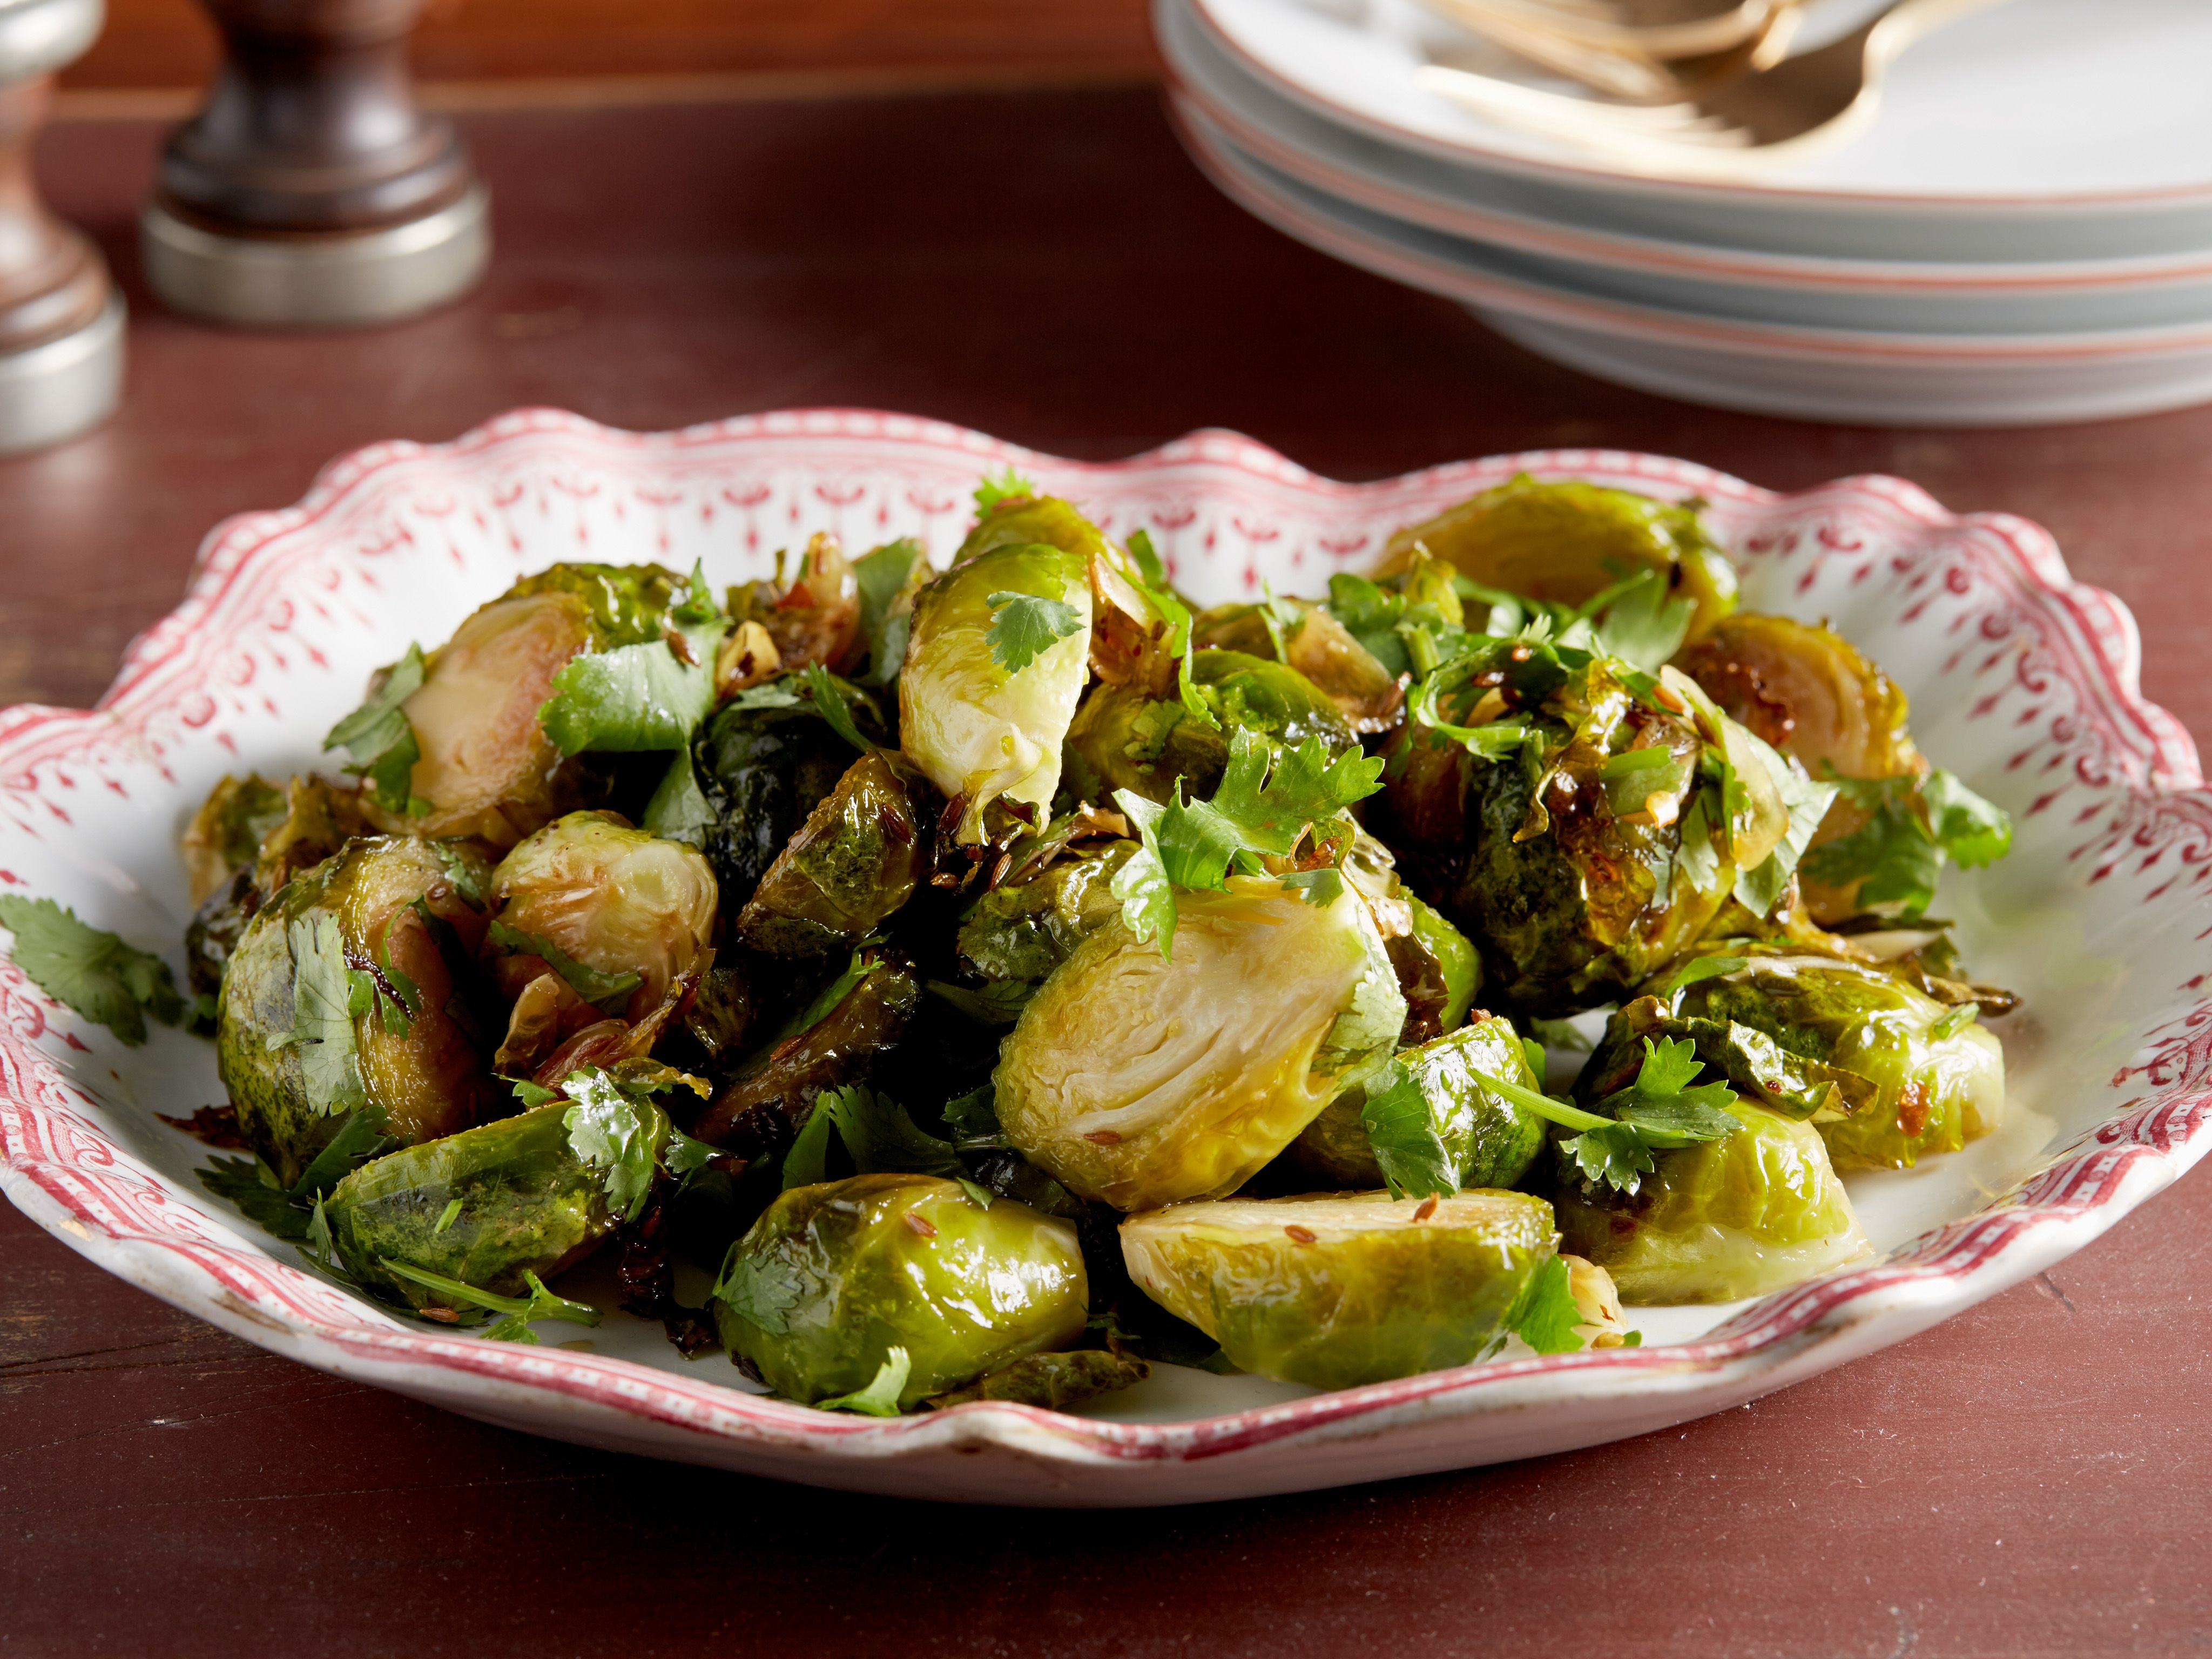 Get this all star easy to follow roasted garlic brussels sprouts roasted garlic brussels sprouts recipe food network kitchen food network cumin lemon juice and cilantro invigorate brussels sprouts mellow flavor in forumfinder Gallery